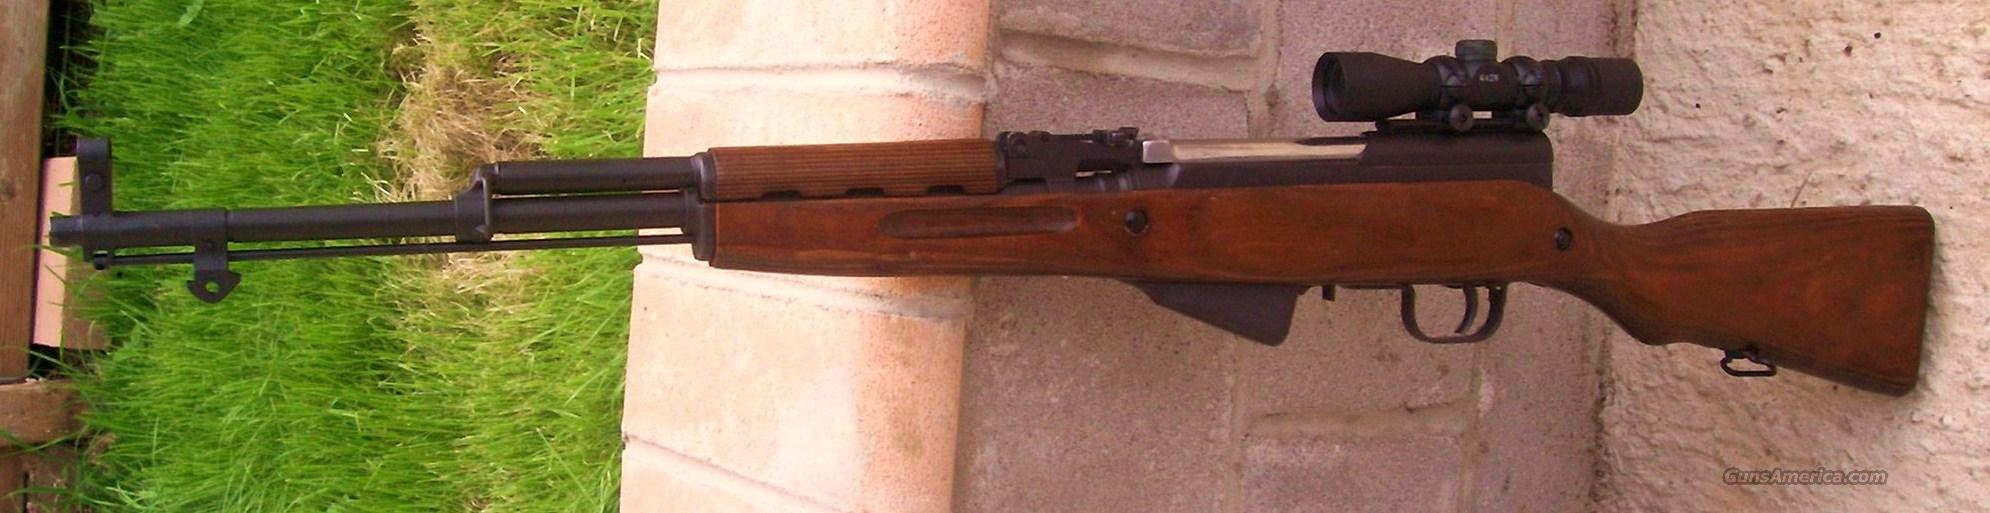 Nornico SKS sold pending funds  Guns > Rifles > SKS Rifles